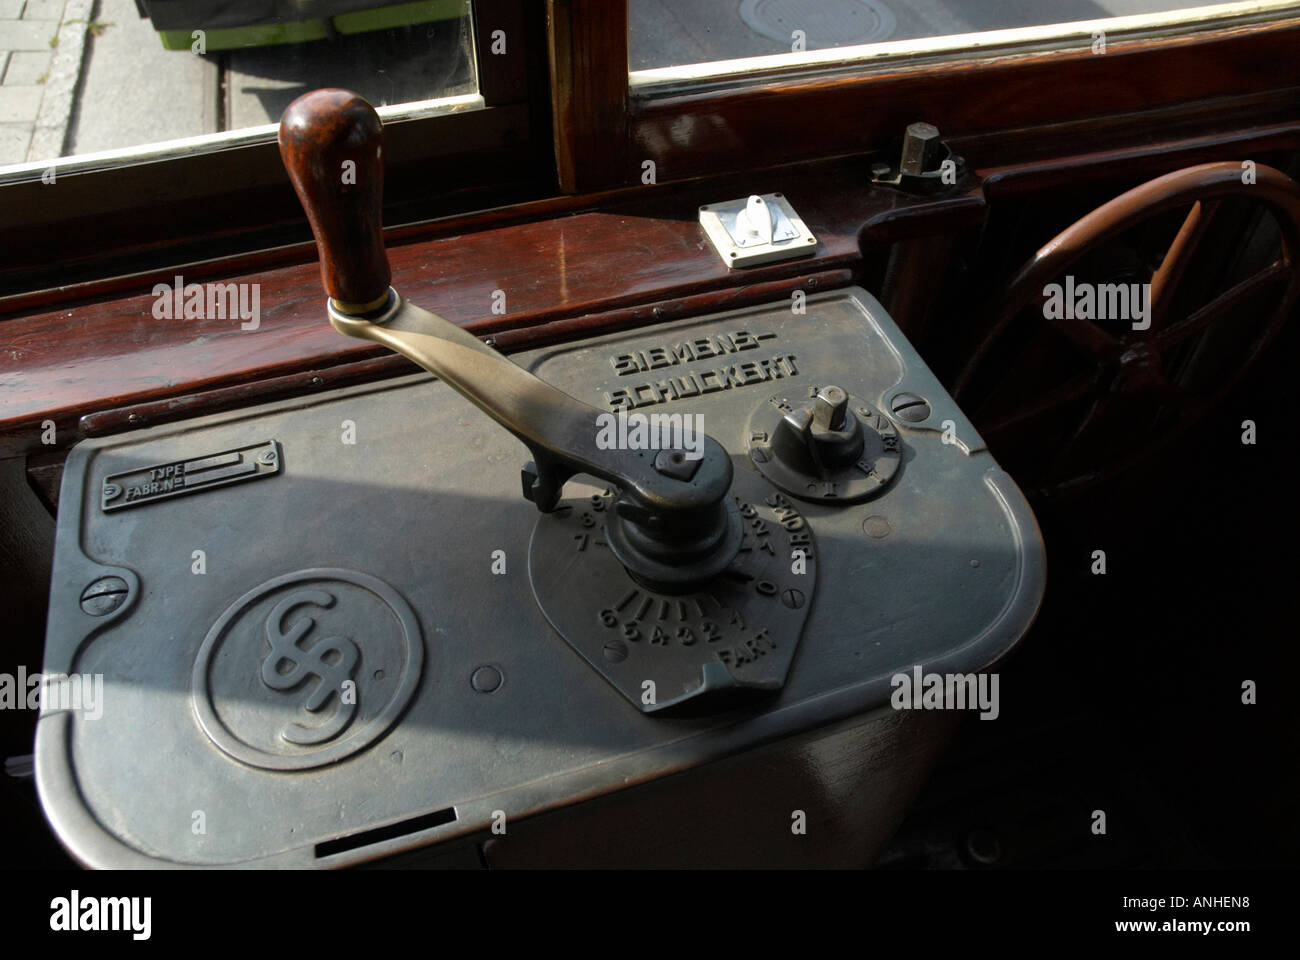 Drivers device on old tram - Stock Image